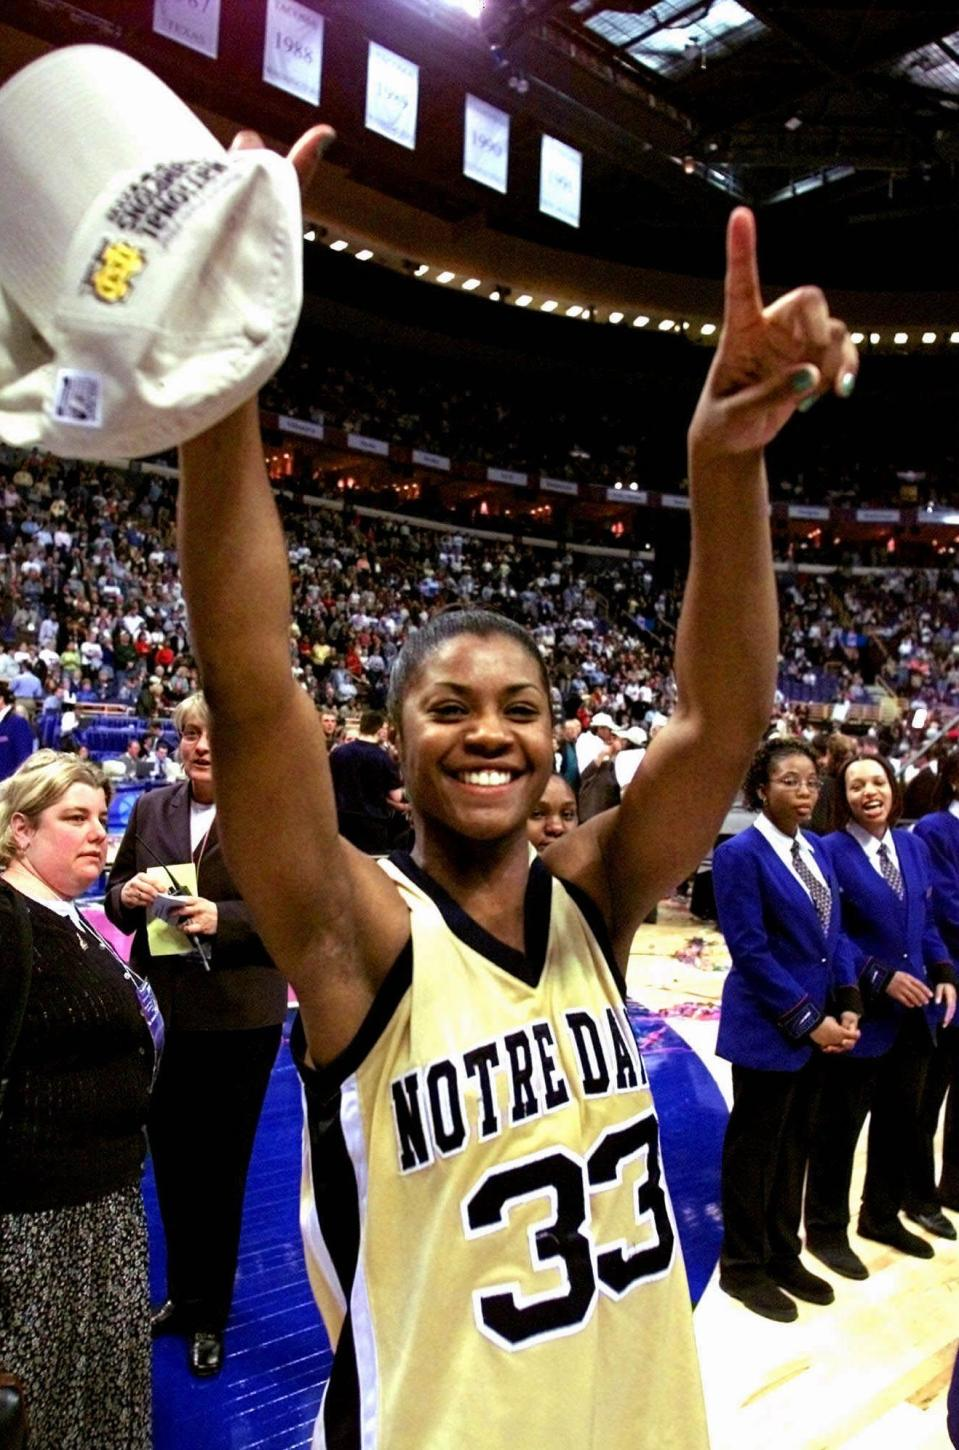 FILE - In this April 1, 2001, file photo, Notre Dame's Niele Ivey shows Notre Dame is Number 1 after they defeated Purdue 68-66 in the 2001 Women's Final Four Championship game in St. Louis. Ivey is ready to take over a Notre Dame program where she spent 17 years as a player and assistant coach. Ivey follows her mentor Muffet McGraw, who retired after 33 years at the school Wednesday, April 22, 2020. (AP Photo/Michael Conroy, File)